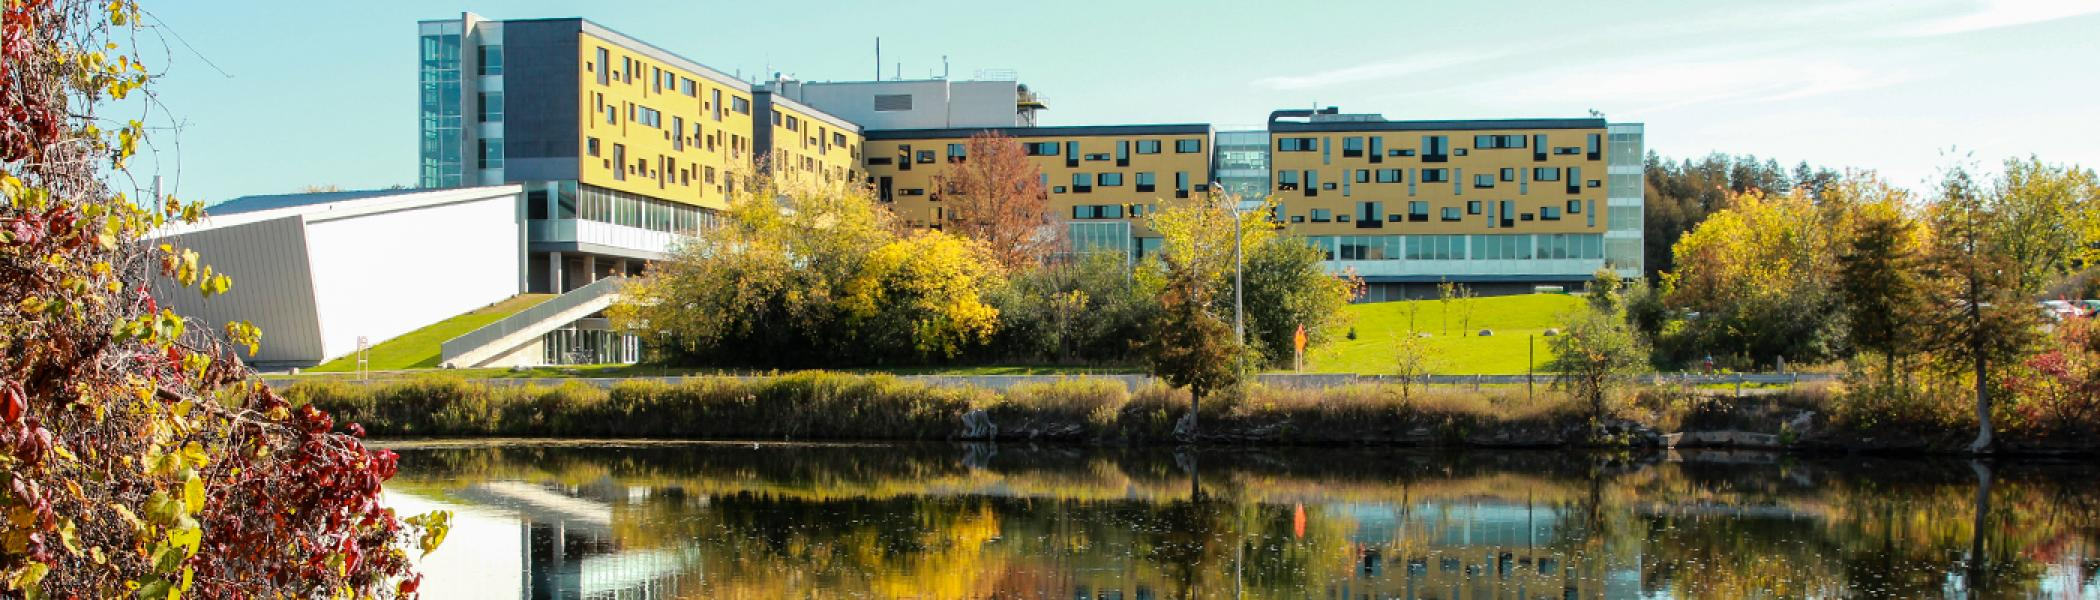 Exterior view of Gzowski College in the afternoon fall sun from across the Otonabee River